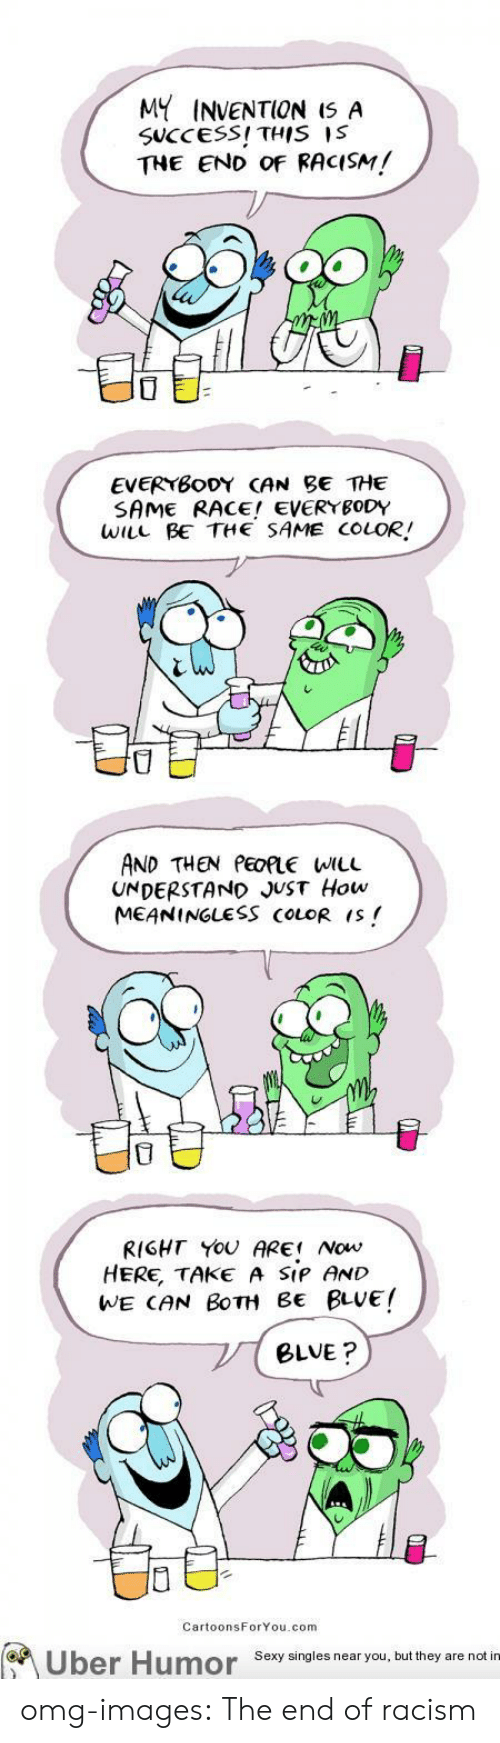 Omg, Racism, and Sexy: MY INVENTION IS A  SUCCESS! THIS IS  THE END of RACISM!  3  EVERYBoDY CAN BE THE  SAME RACE! EVERYBODY  WiLL BE THE SAME COLOR/  0  AND THEN PEOLE WILL  UNDERSTAND JUST How  MEANINGLESS COLOR  RIGHT YOU ARE! Now  HERE, TAKE A SIP AND  WE CAN BoTH BE BLVE!  BLVE?  CartoonsForYou.com  Uber Humor Sexy singles near you, but they are notu omg-images:  The end of racism